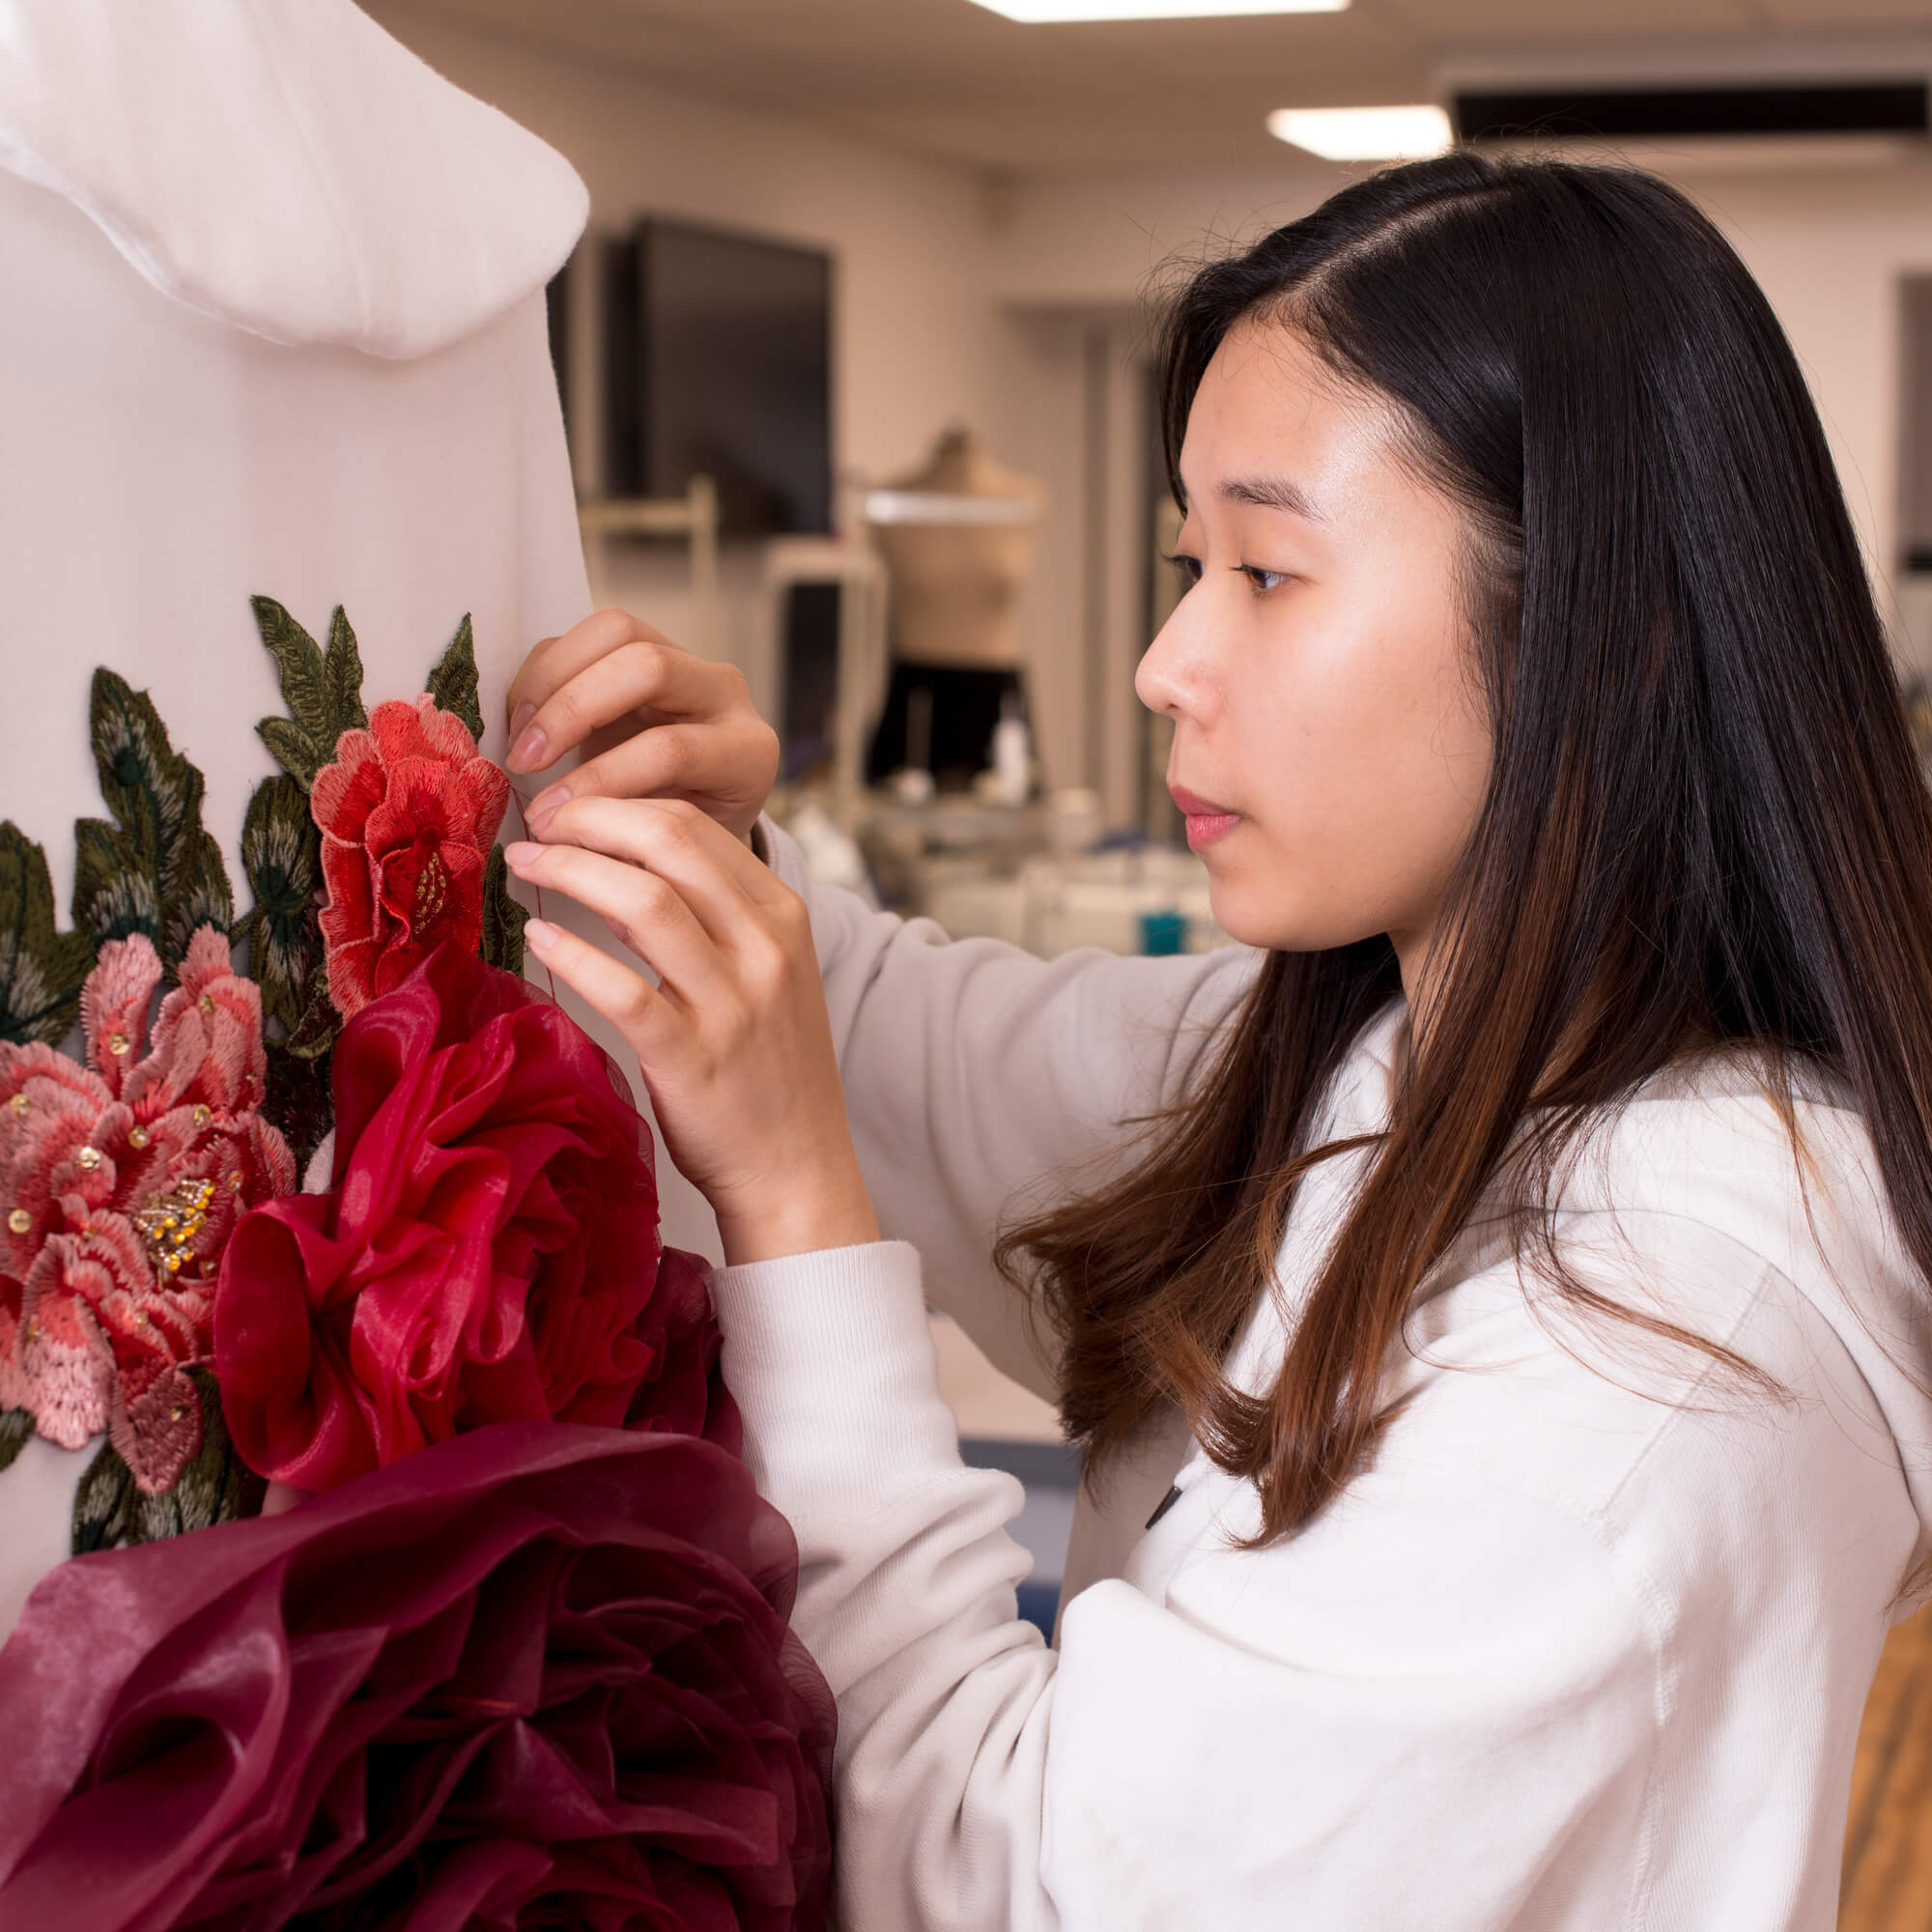 A female touches a white garment embellished with pink and red floral embroidery and 3d flowers